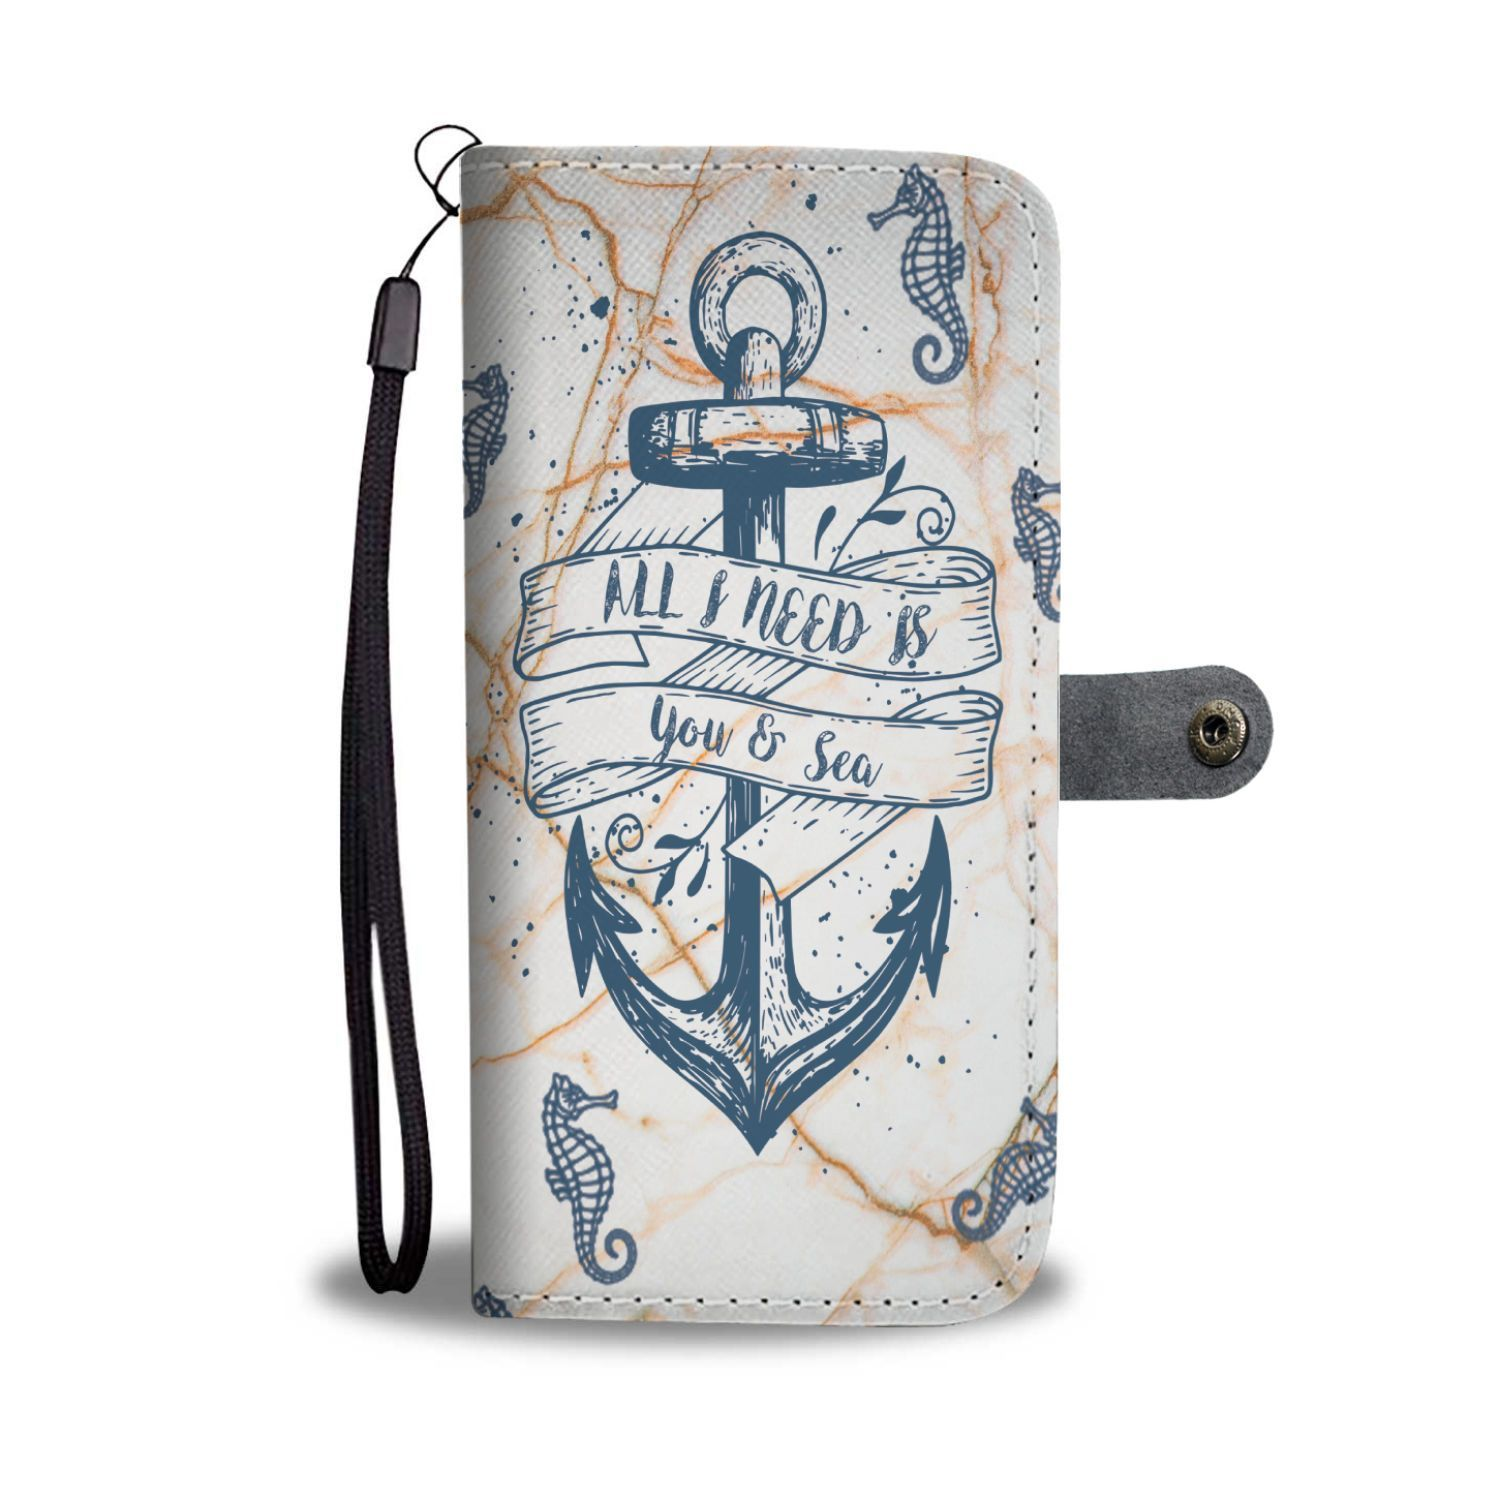 Custom Phone Wallet Available For All Phone Models All I Need Is You & See Phone Wallet - LG G7